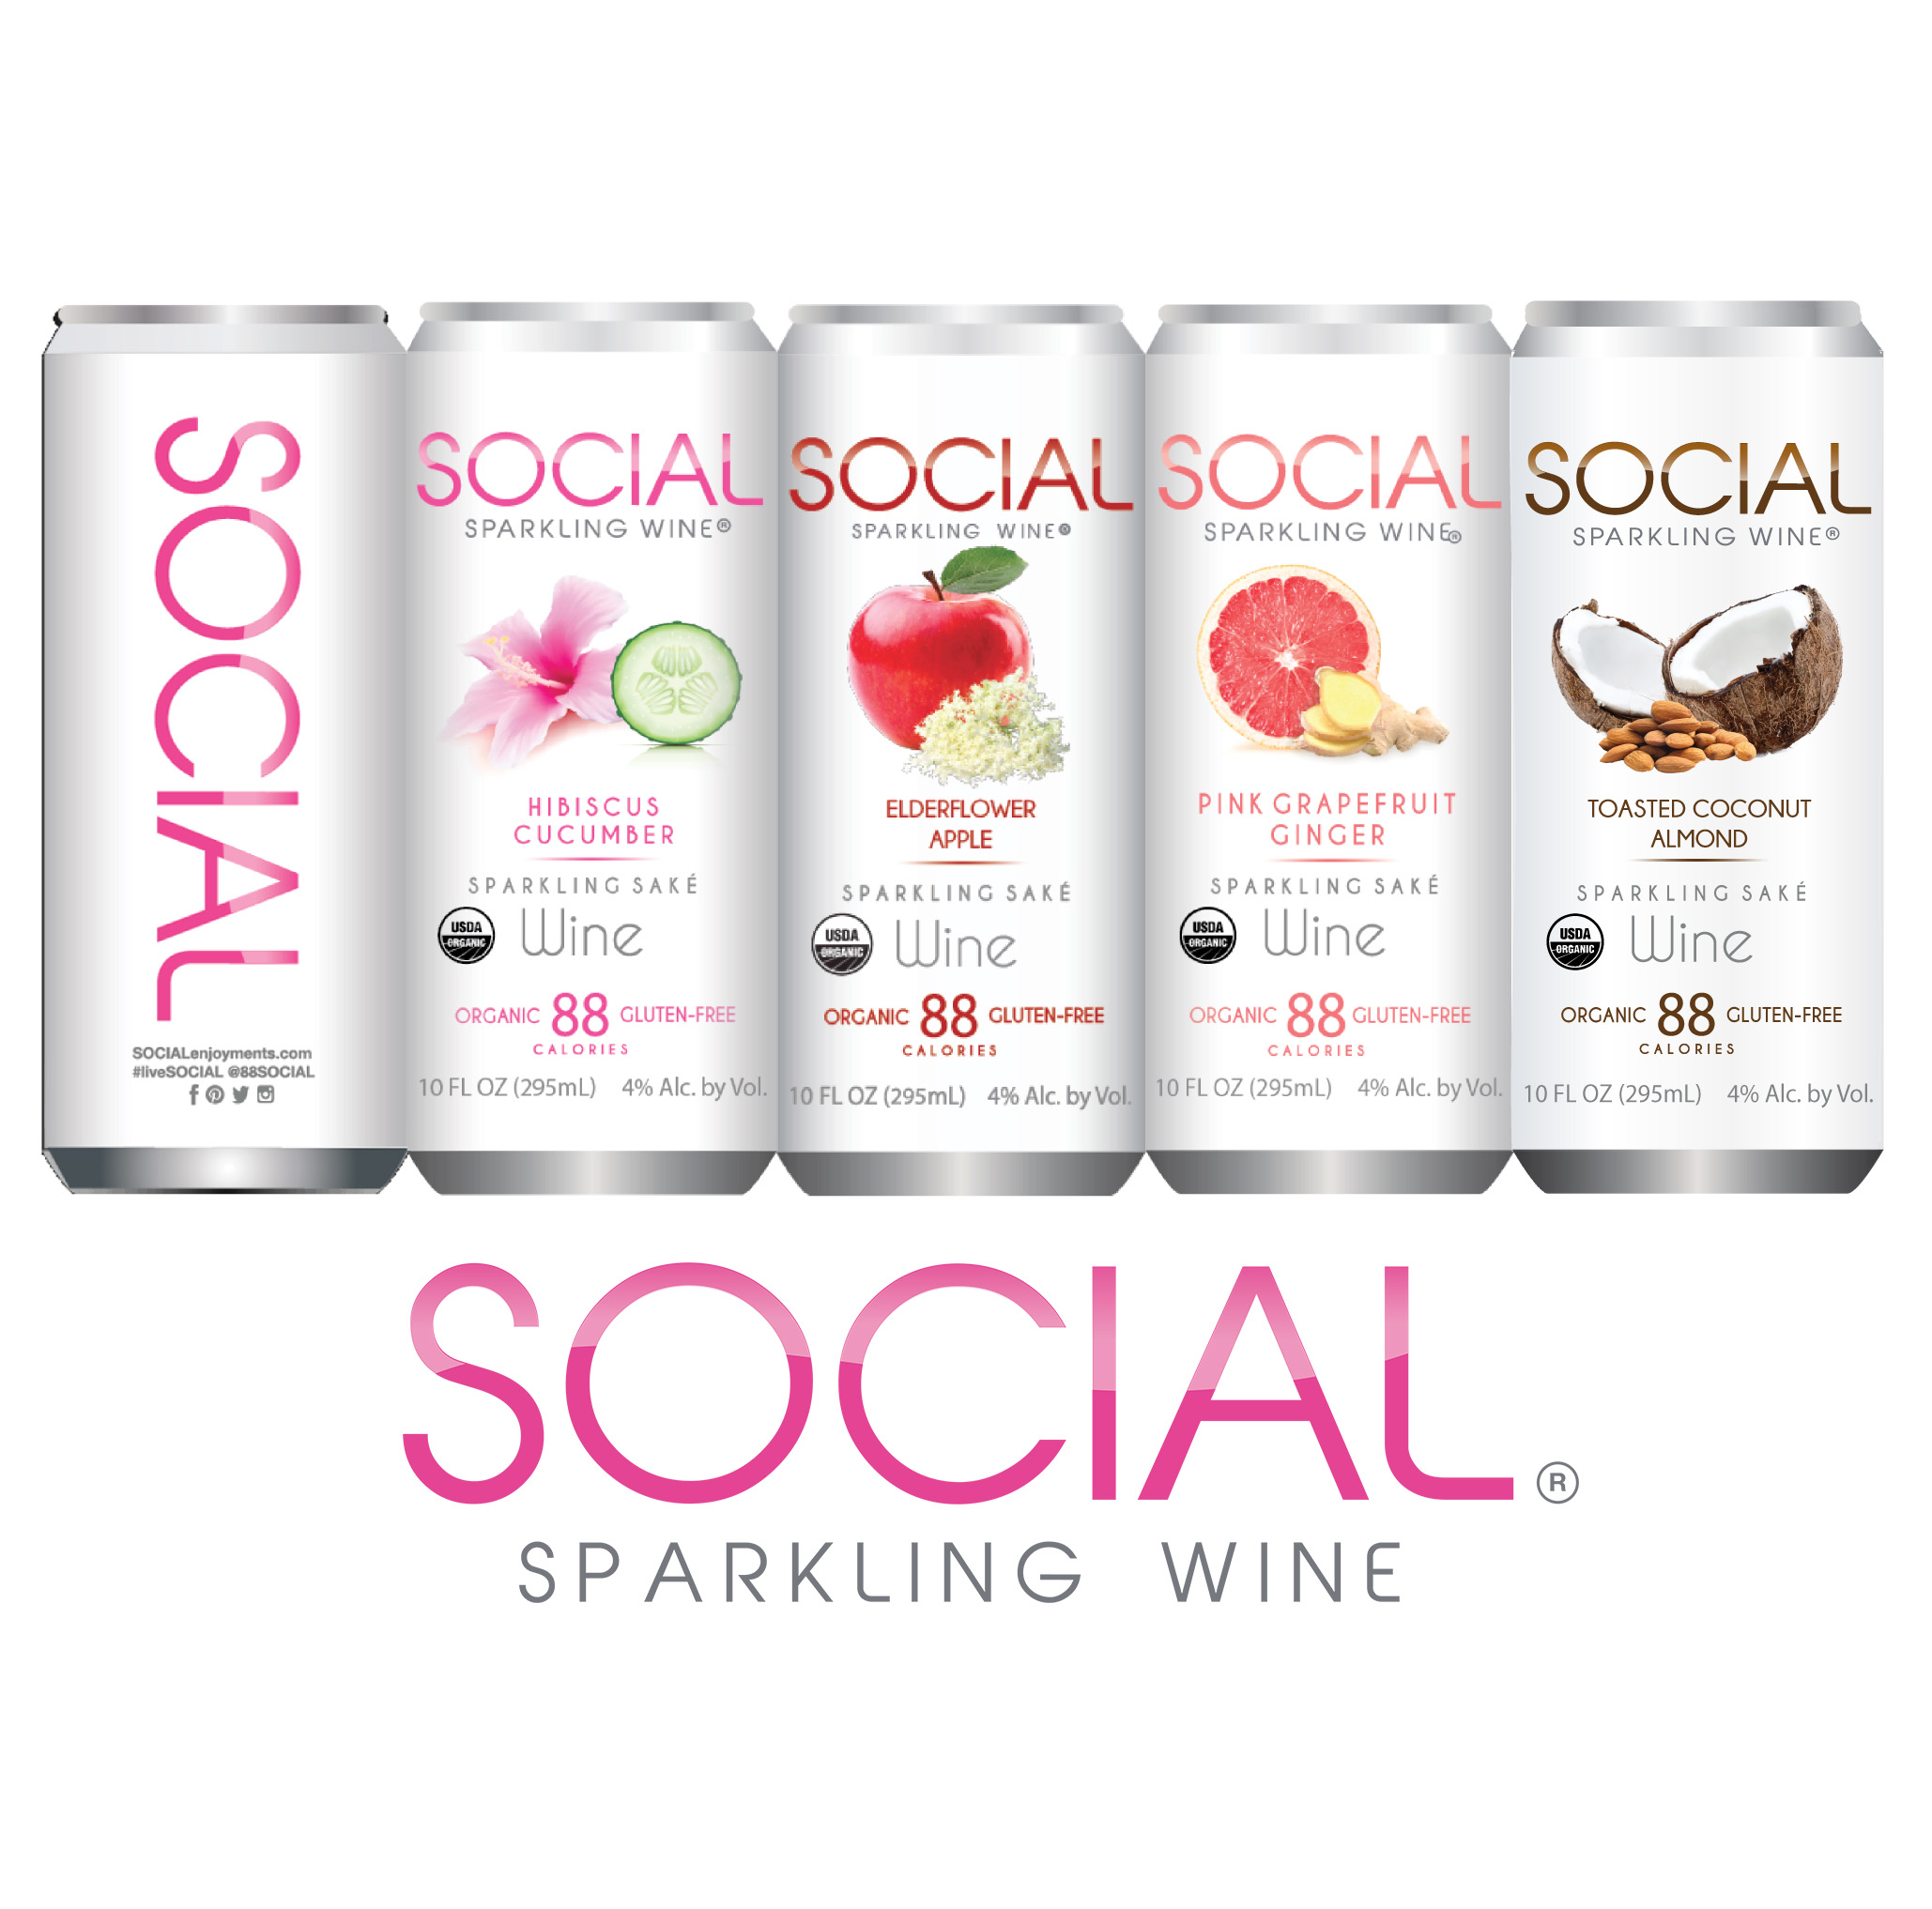 Social Sparkling Wine's line of healthy alcoholic beverages